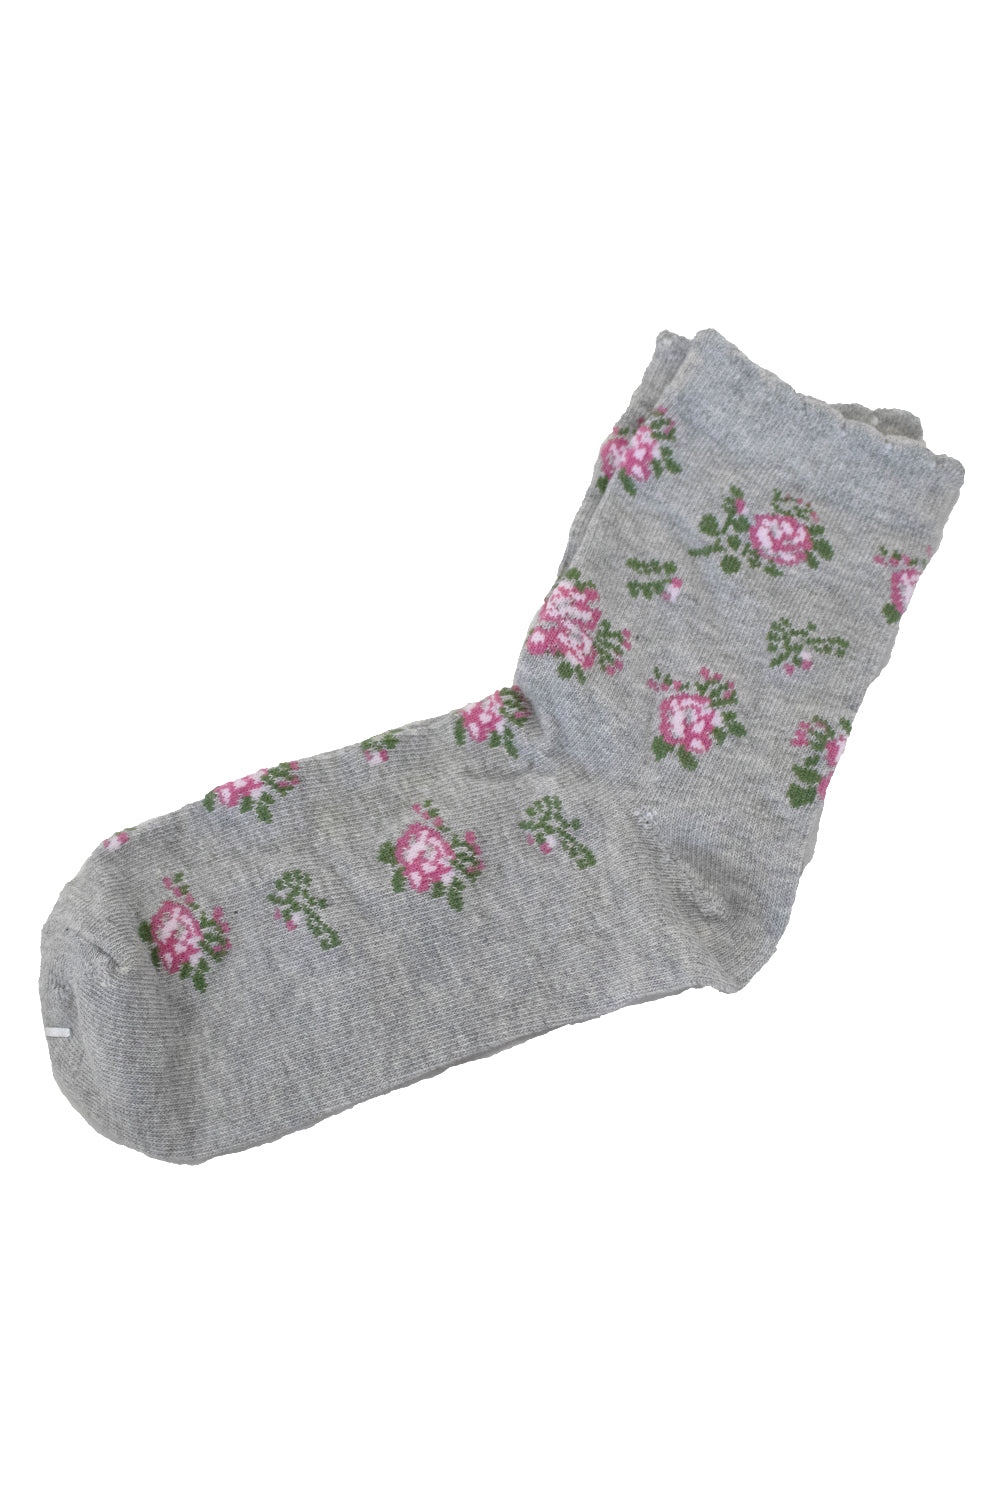 Frilly Floral Socks